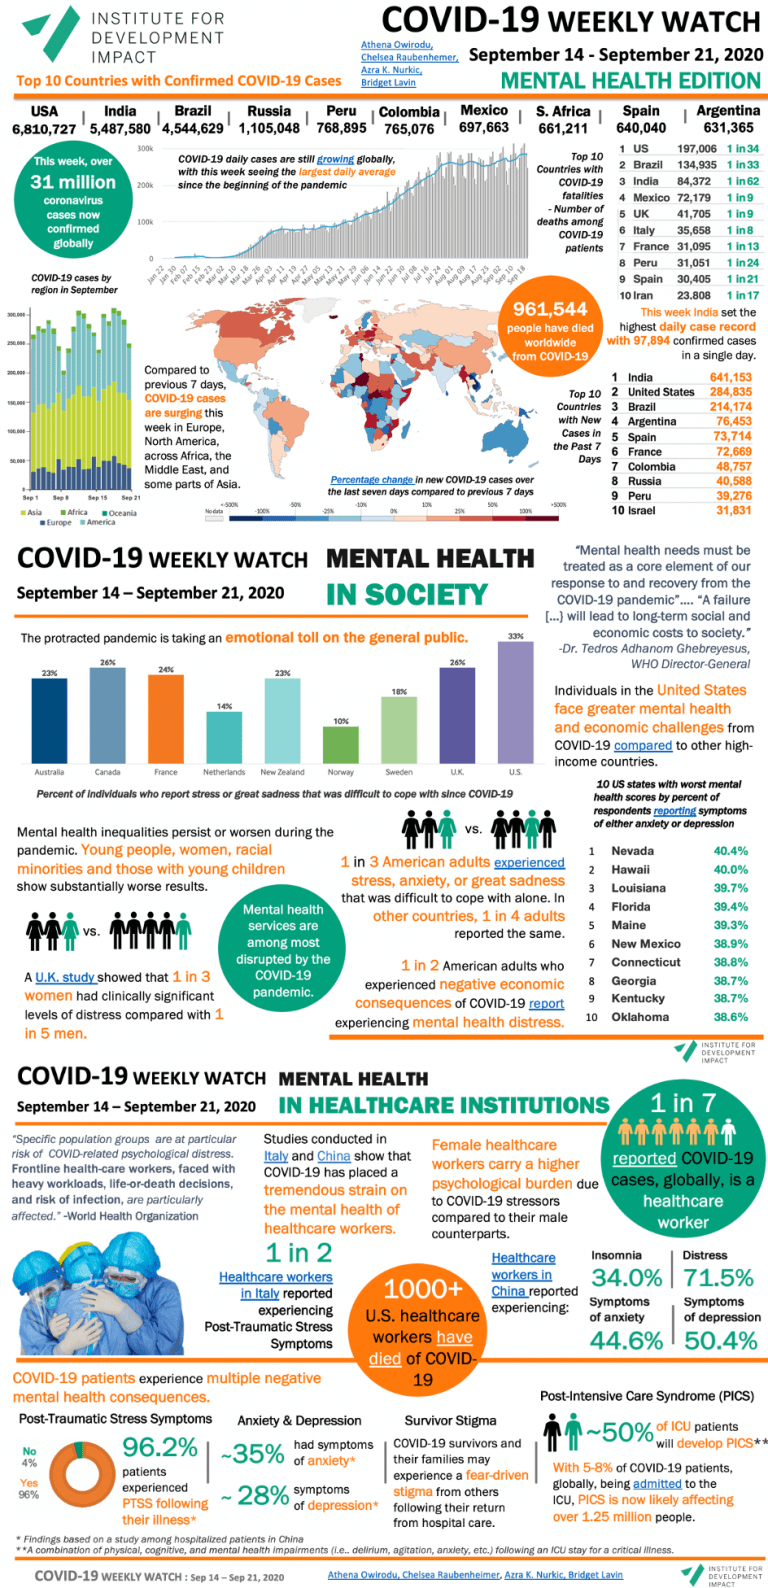 COVID-19 WEEKLY WATCH September 14 - September 21, 2020 - Mental Health Edition